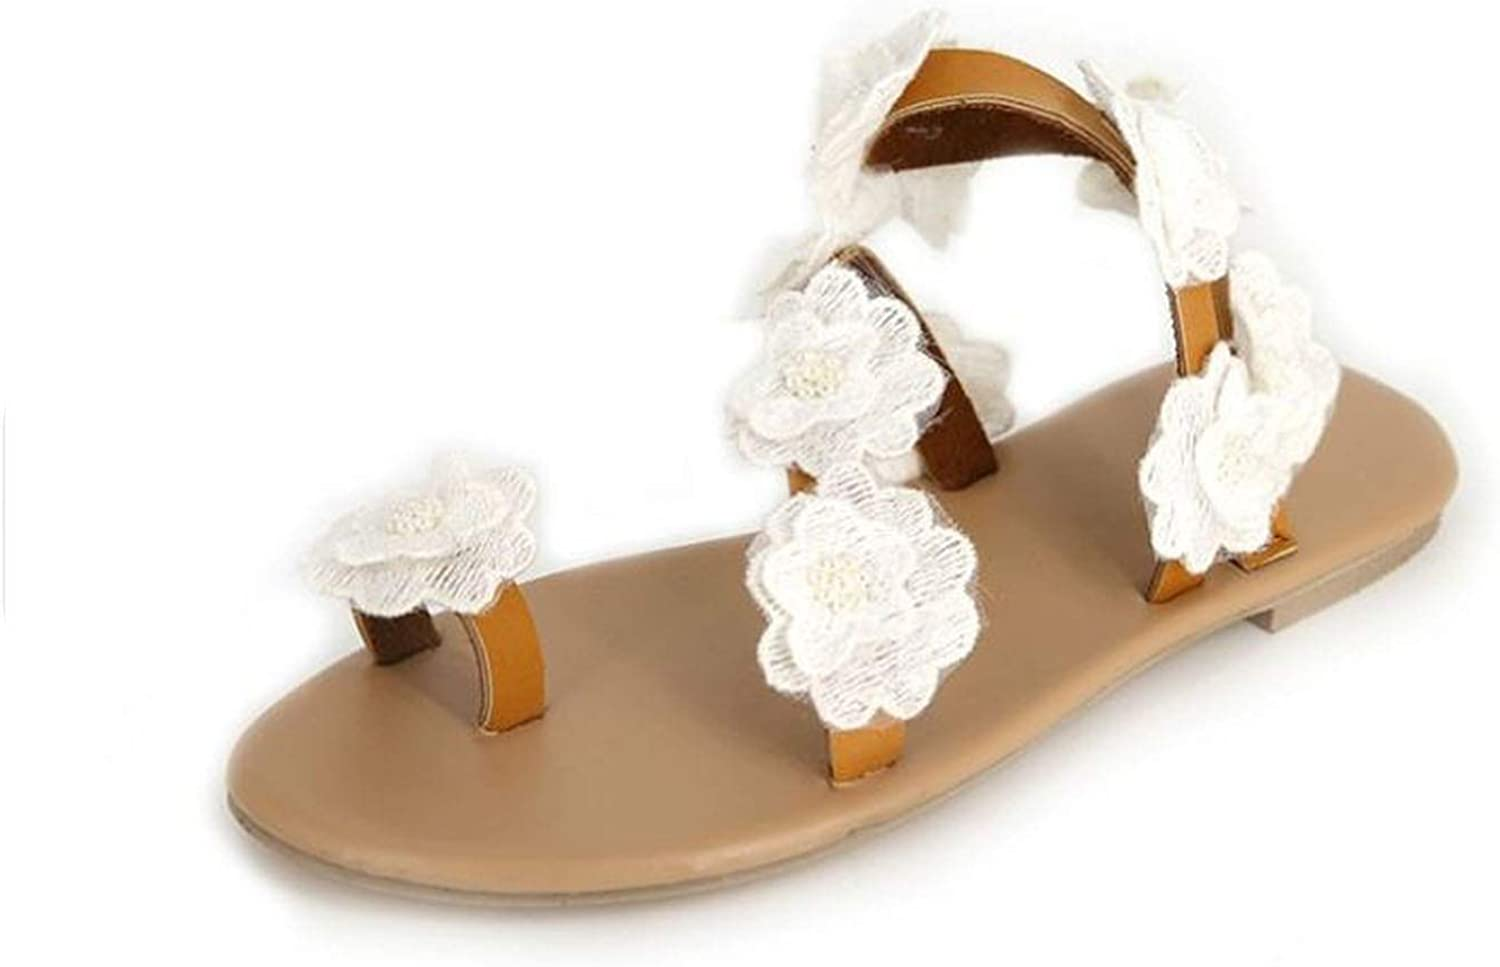 Floral Sandals Slip On Gladiator Flats shoes Women Club Summer Beach shoes Holiday Sandals